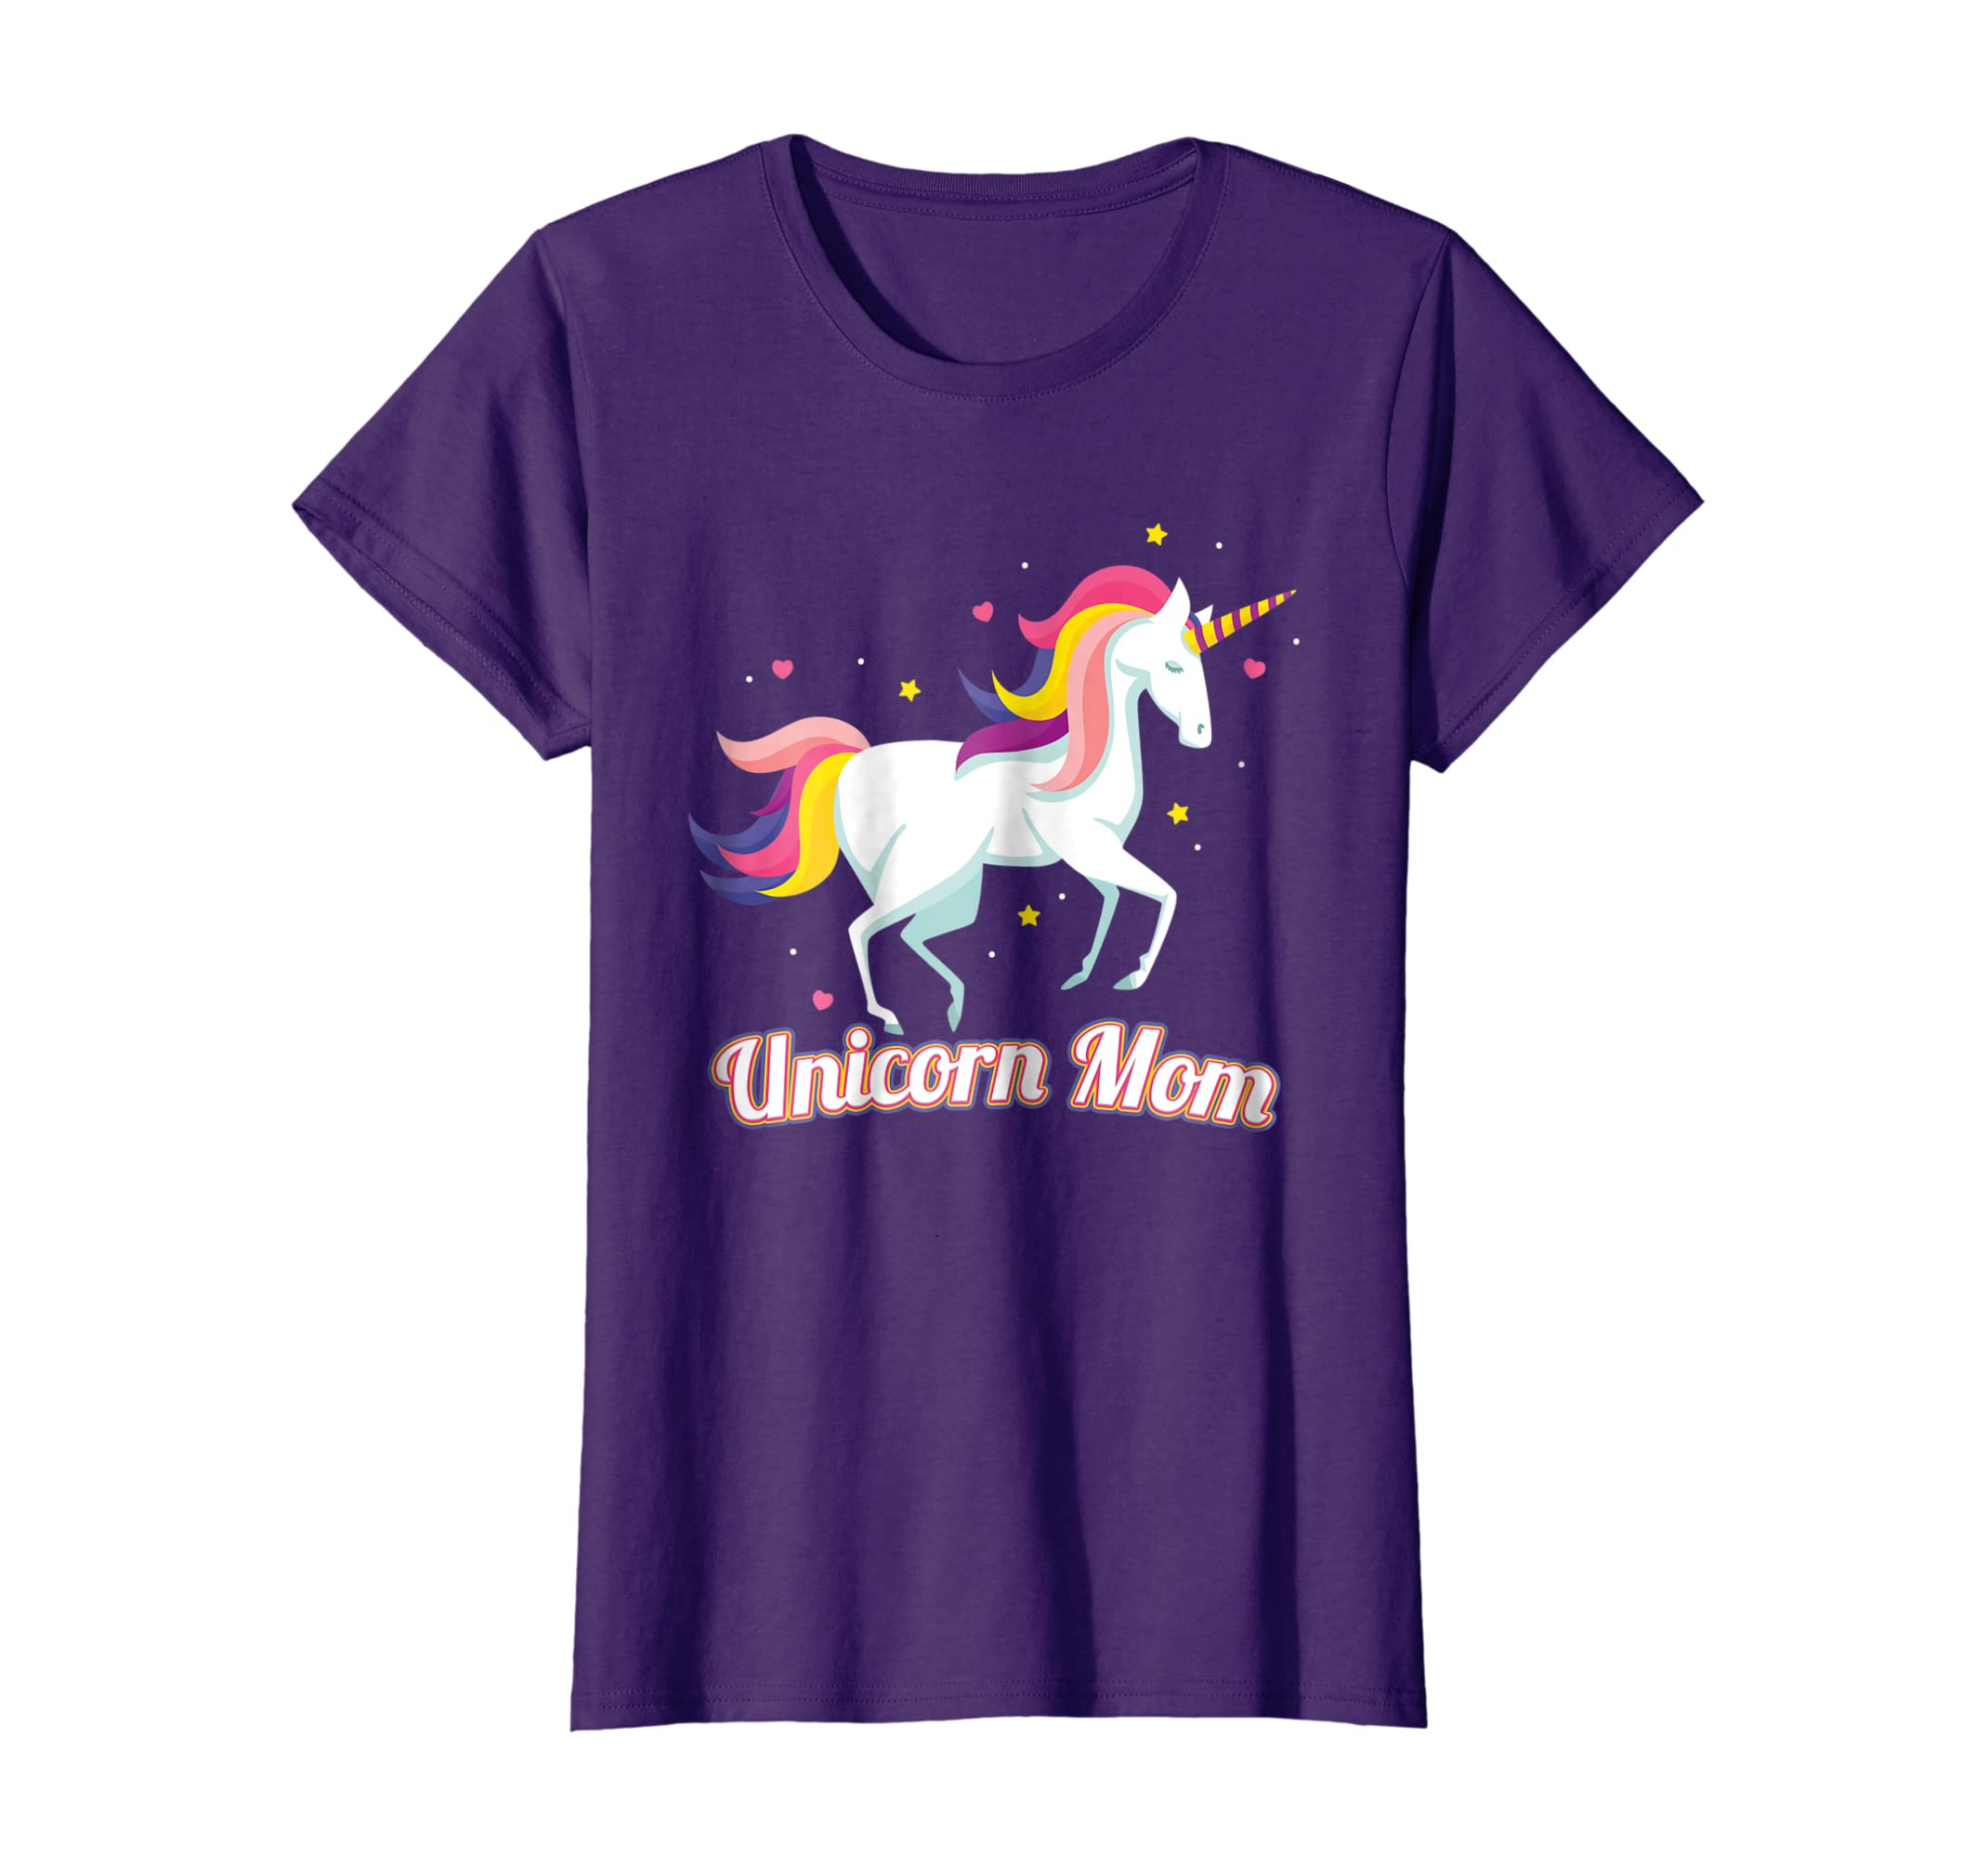 7e96b985 Amazon.com: Unicorn Mom Shirt Mother's Day Gift for Mama TShirt T-Shirt:  Clothing